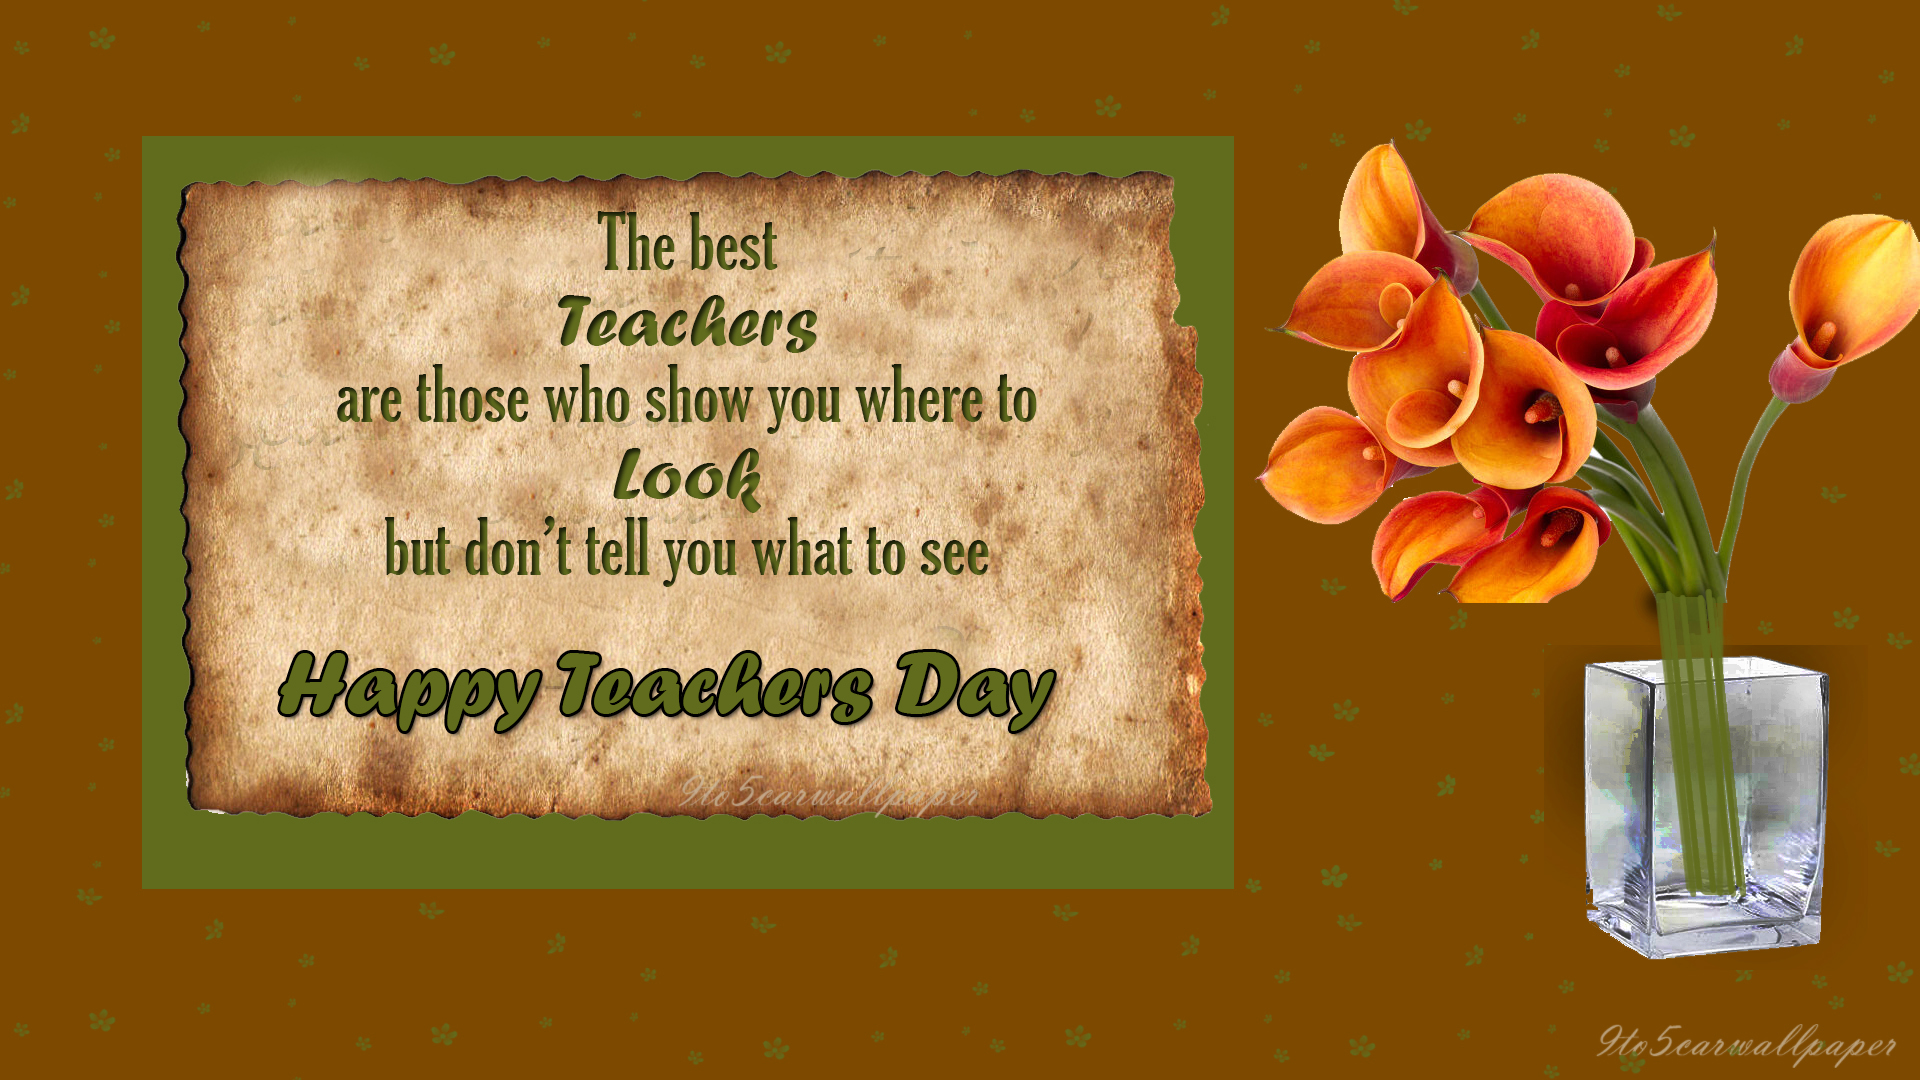 happy-teachers-day-images-quotes-cards-posters-wallpapers-2017